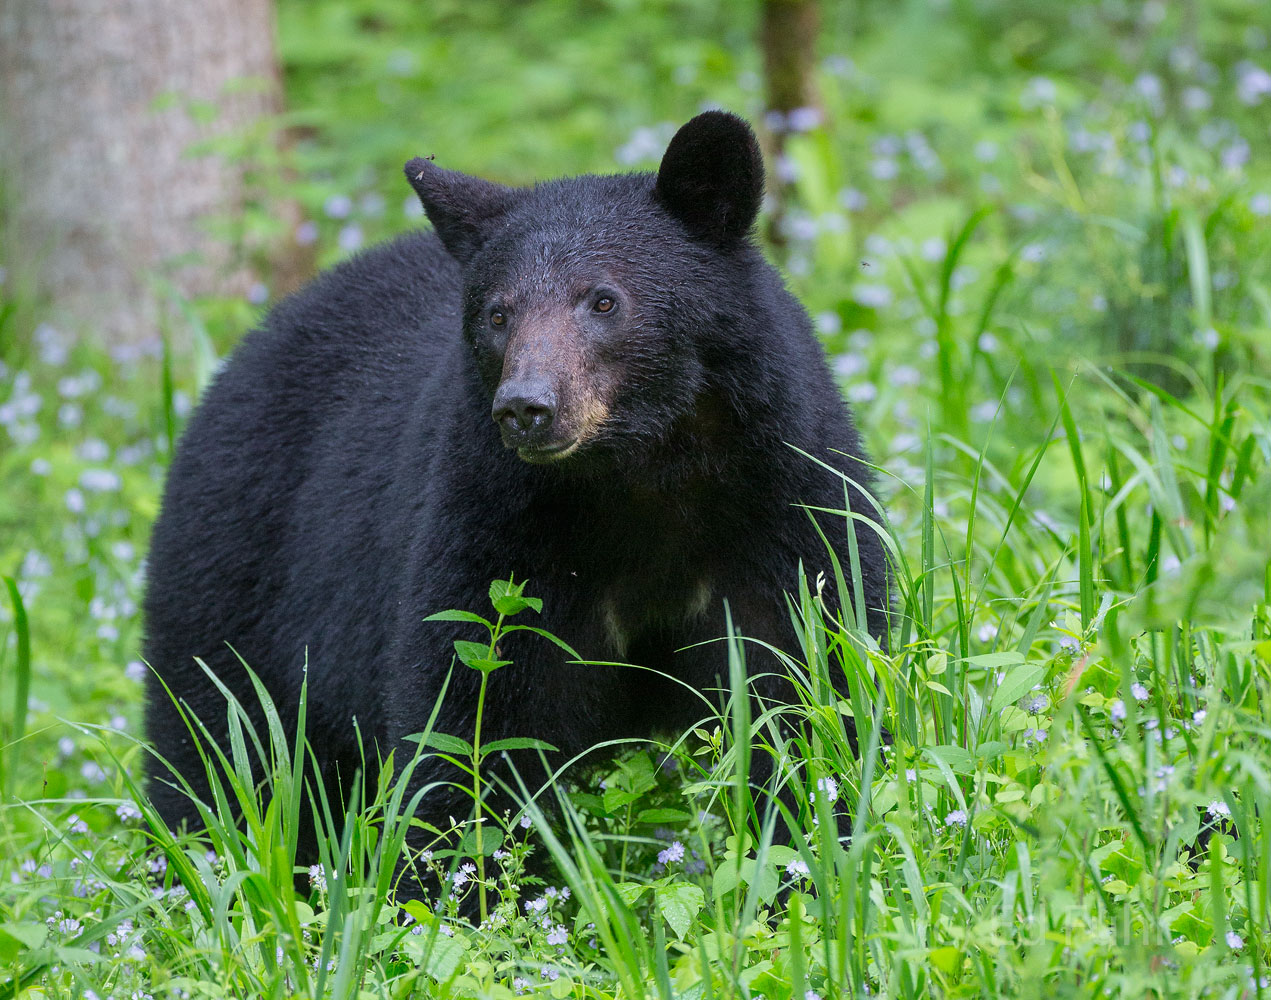 cades cove, loop road, bear, photo